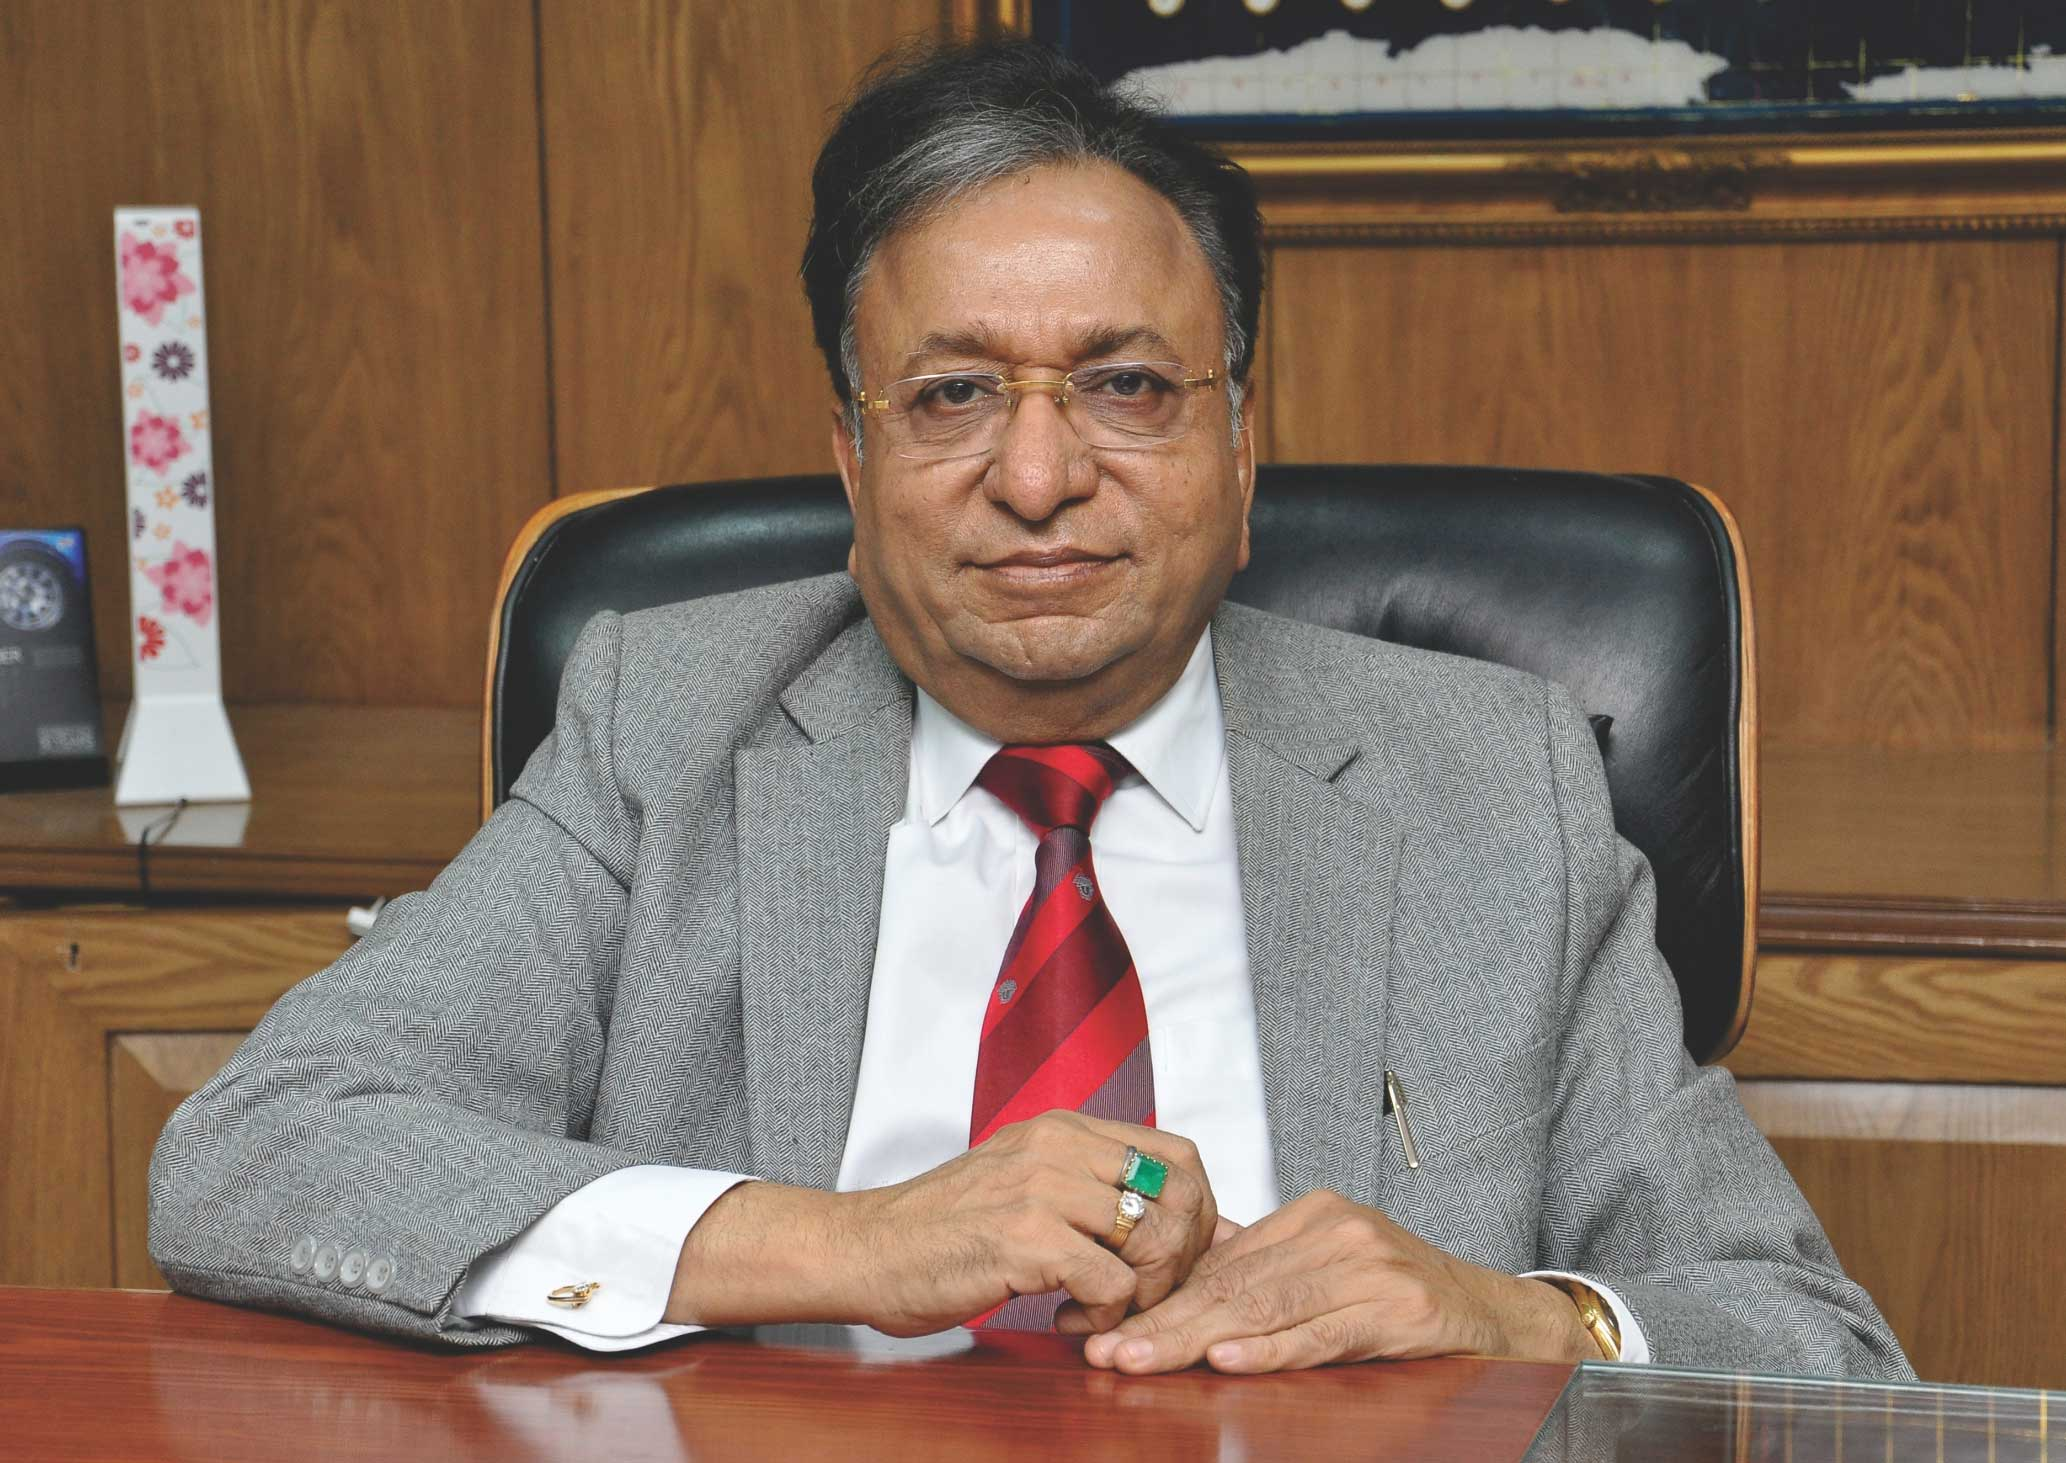 Dr. J.K. JAIN - Chairman & Managing Director